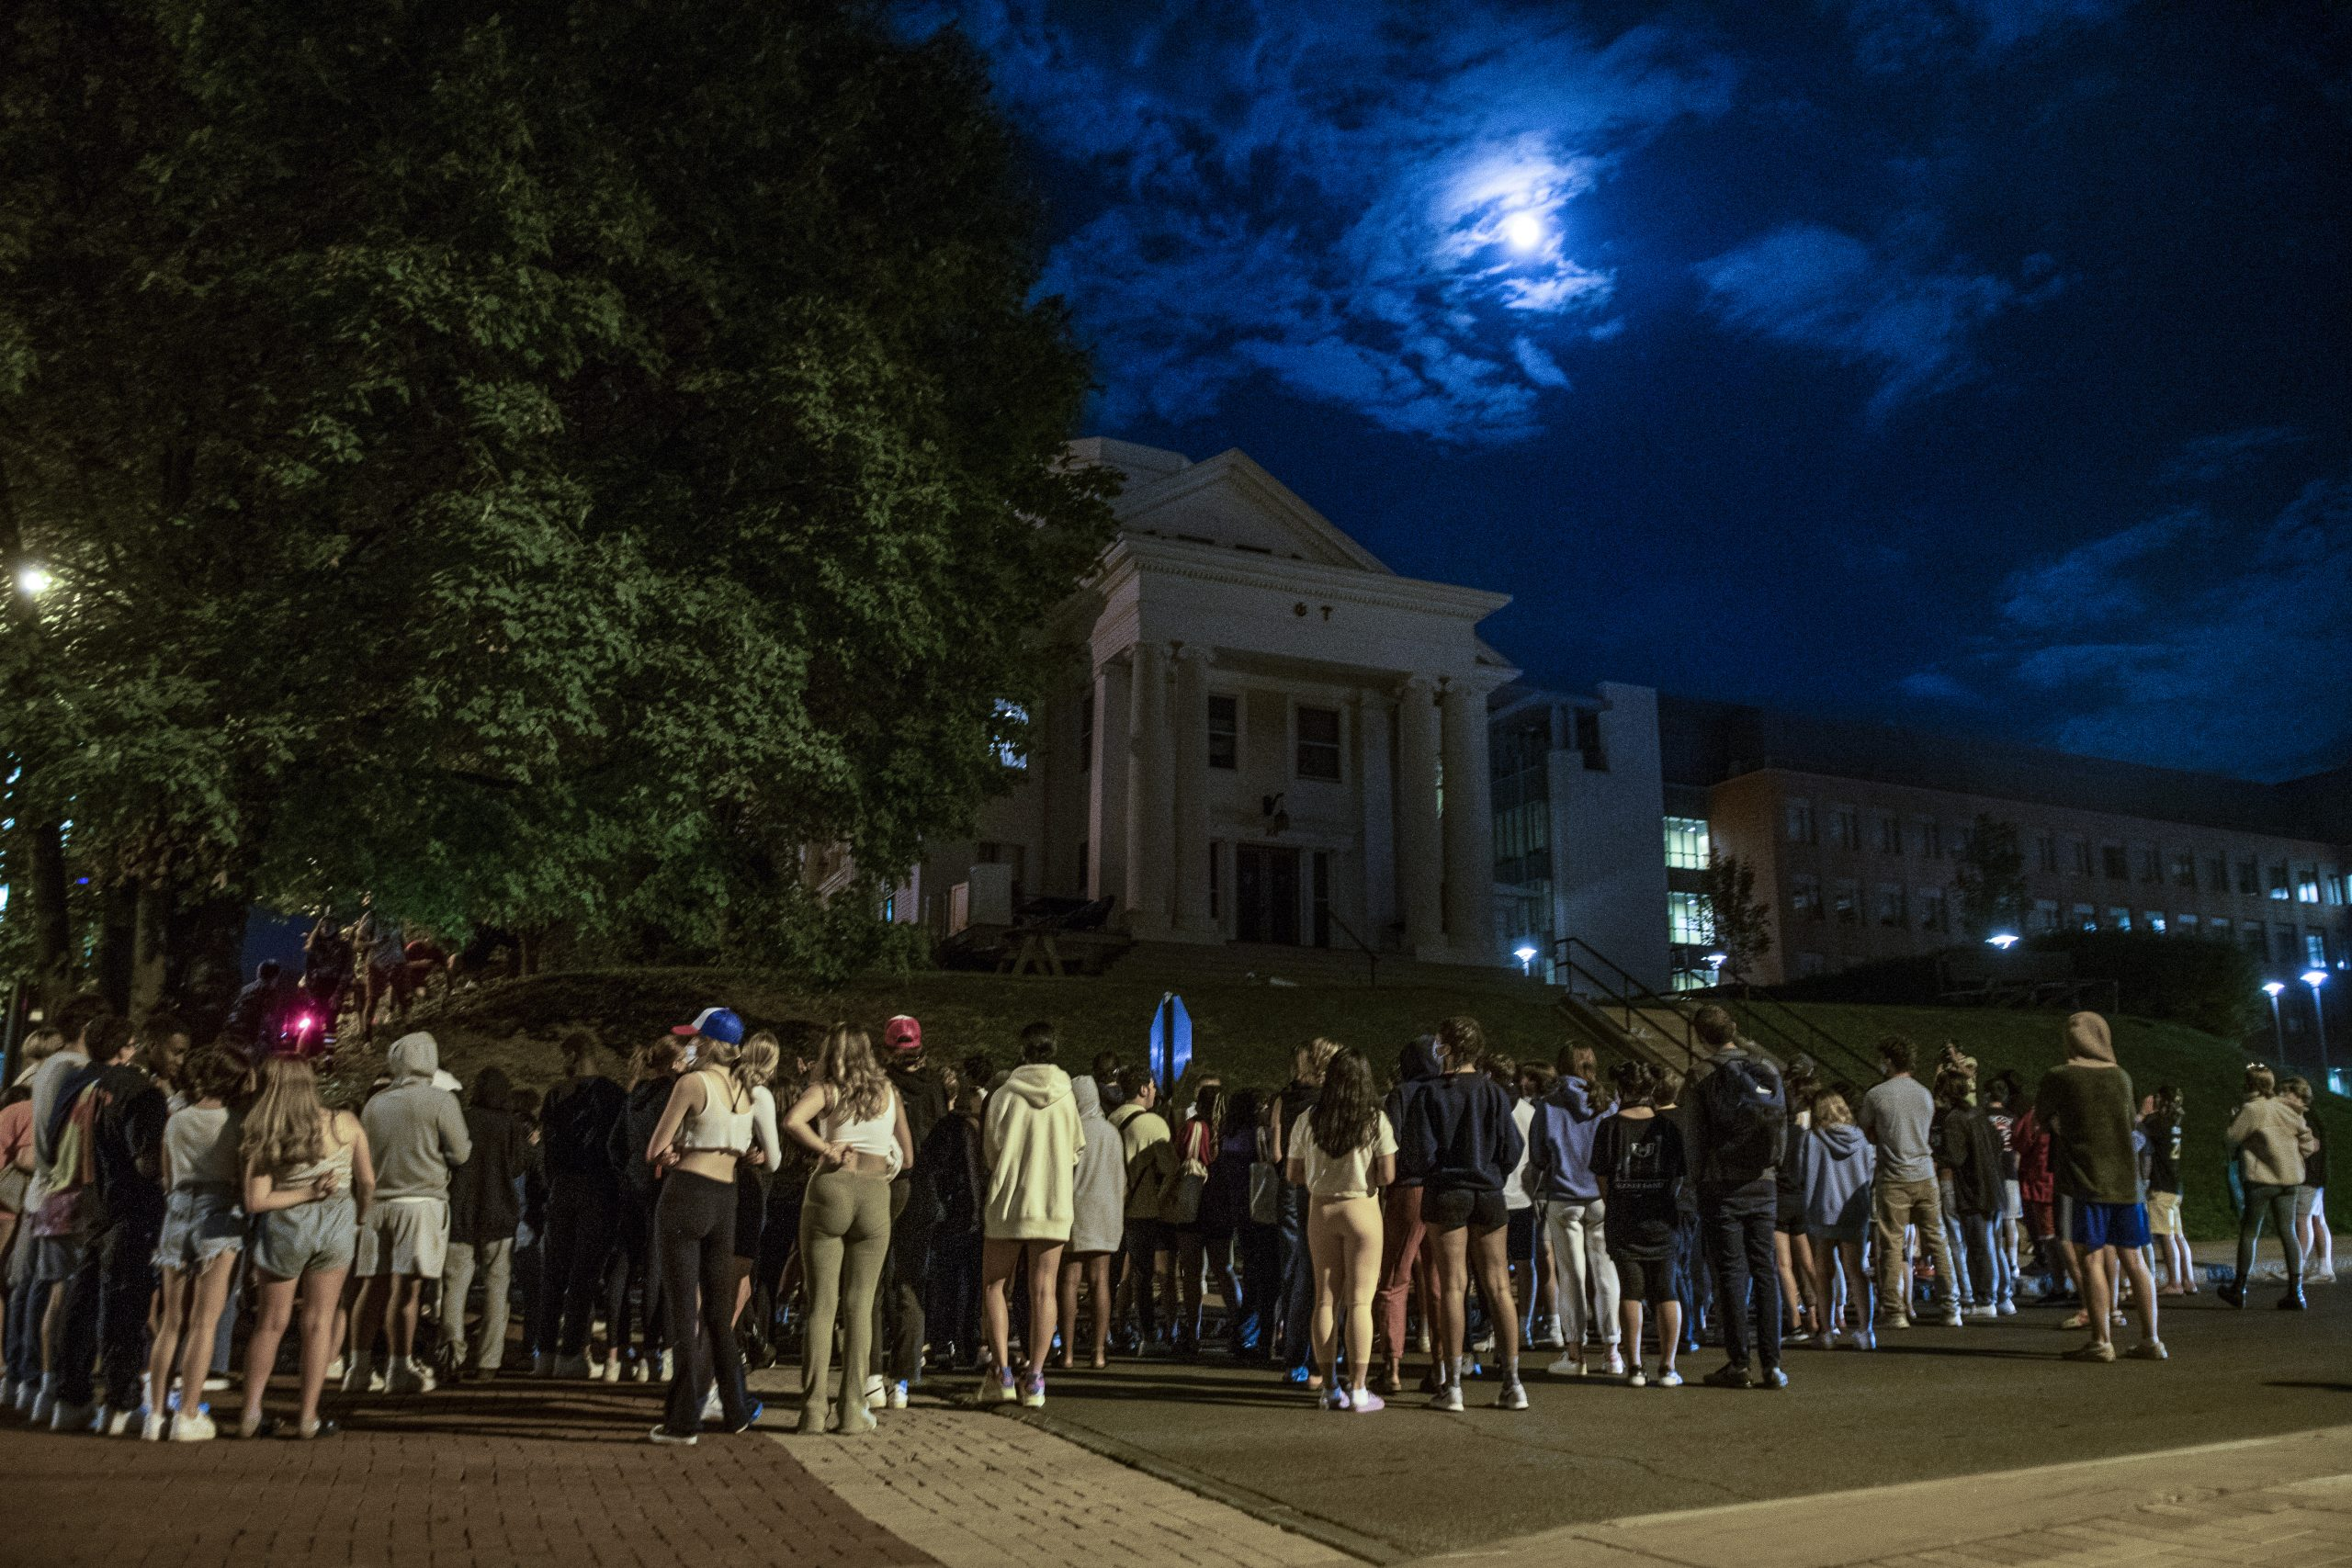 A group of students gathered tonight to protest recent allegations of sexual misconduct by Syracuse University affiliated fraternities. The gathering began around 9 p.m. Tuesday, and dispersed at roughly 11 PM.